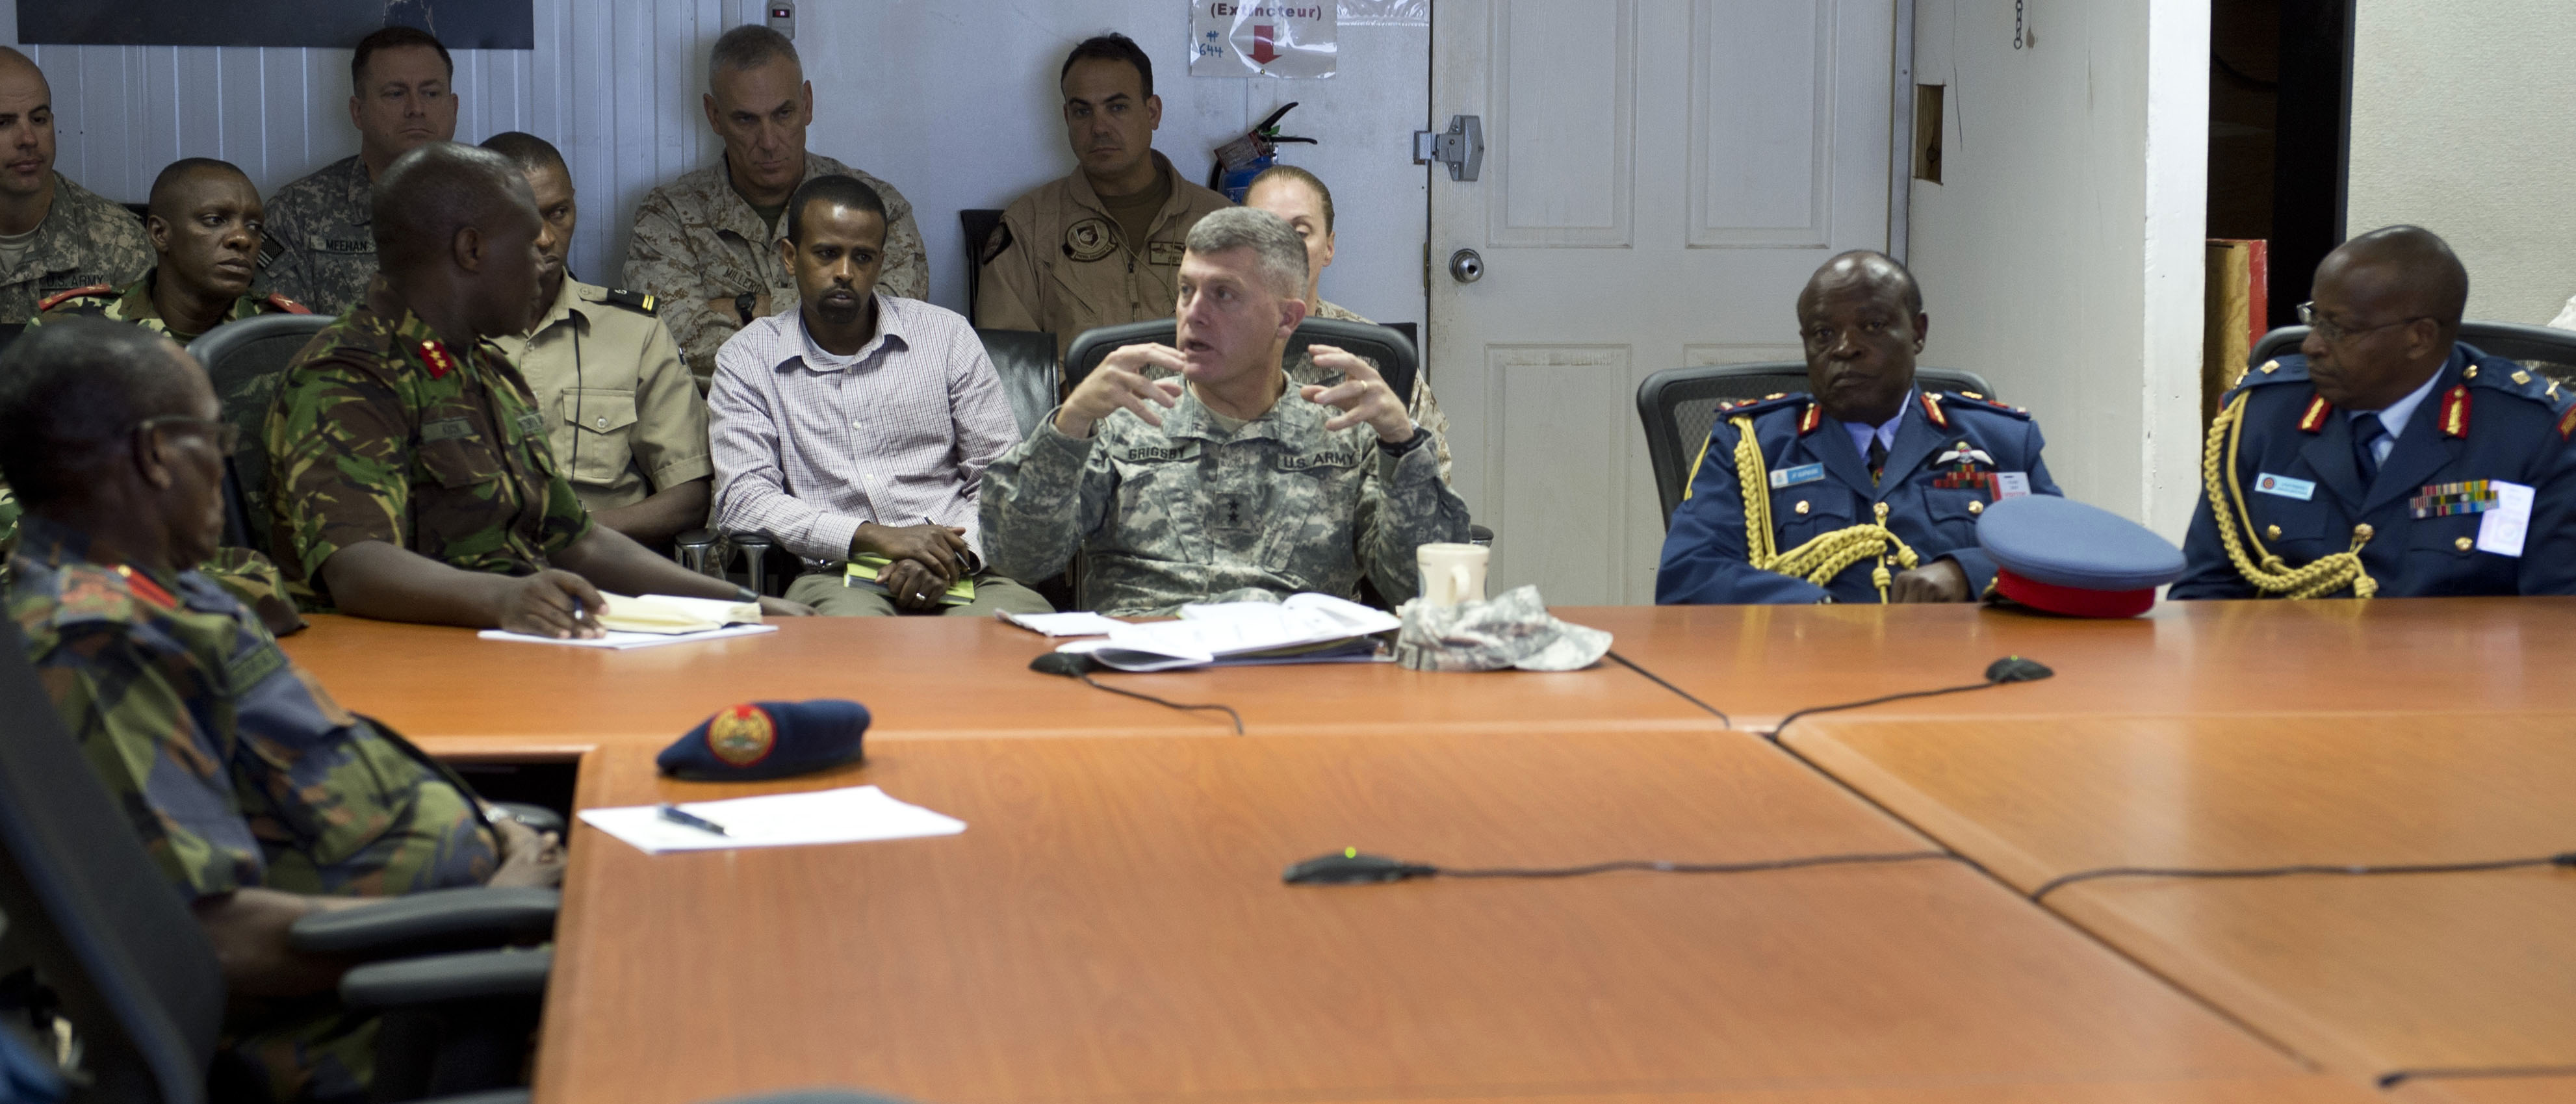 Maj. Gen. Wayne W. Grigsby, Jr., Combined Joint Task Force-Horn of Africa commanding general, meets with East Africa military Leaders at Camp Lemonnier, Djibouti on Feb. 11, 2015. Grigsby directly engaged with the Partner Nations' military leaders to understand what the Profession of Arms meant to each individual country and encouraged them to instill these principles at all levels of military service. (U.S. Air Force photo by Staff Sgt Kevin Iinuma)